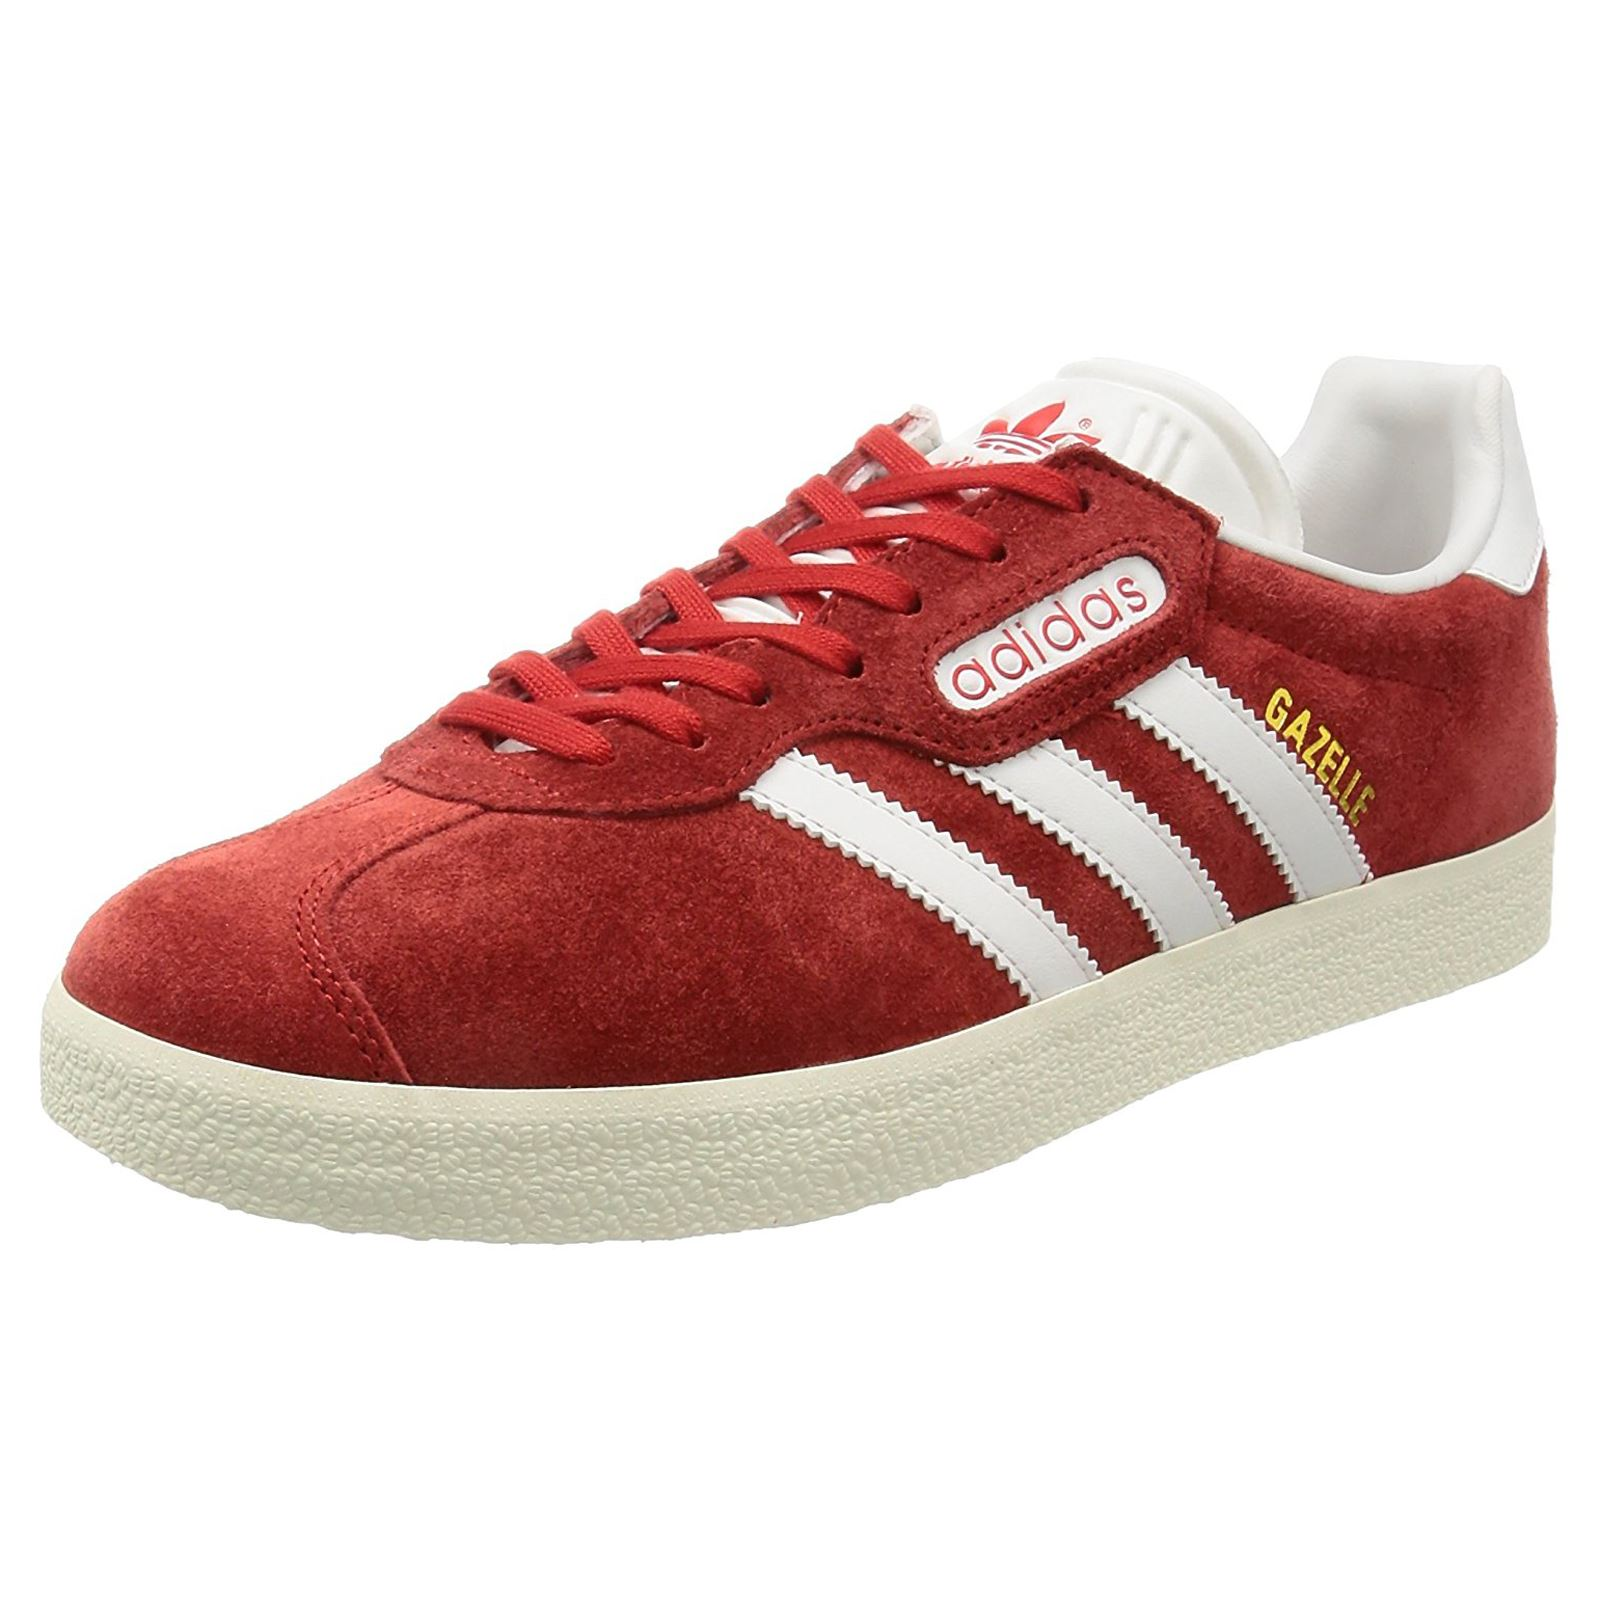 Adidas Gazelle Super Red Vintage White Mens Originals Retro Low-Top Trainers 50cc011be